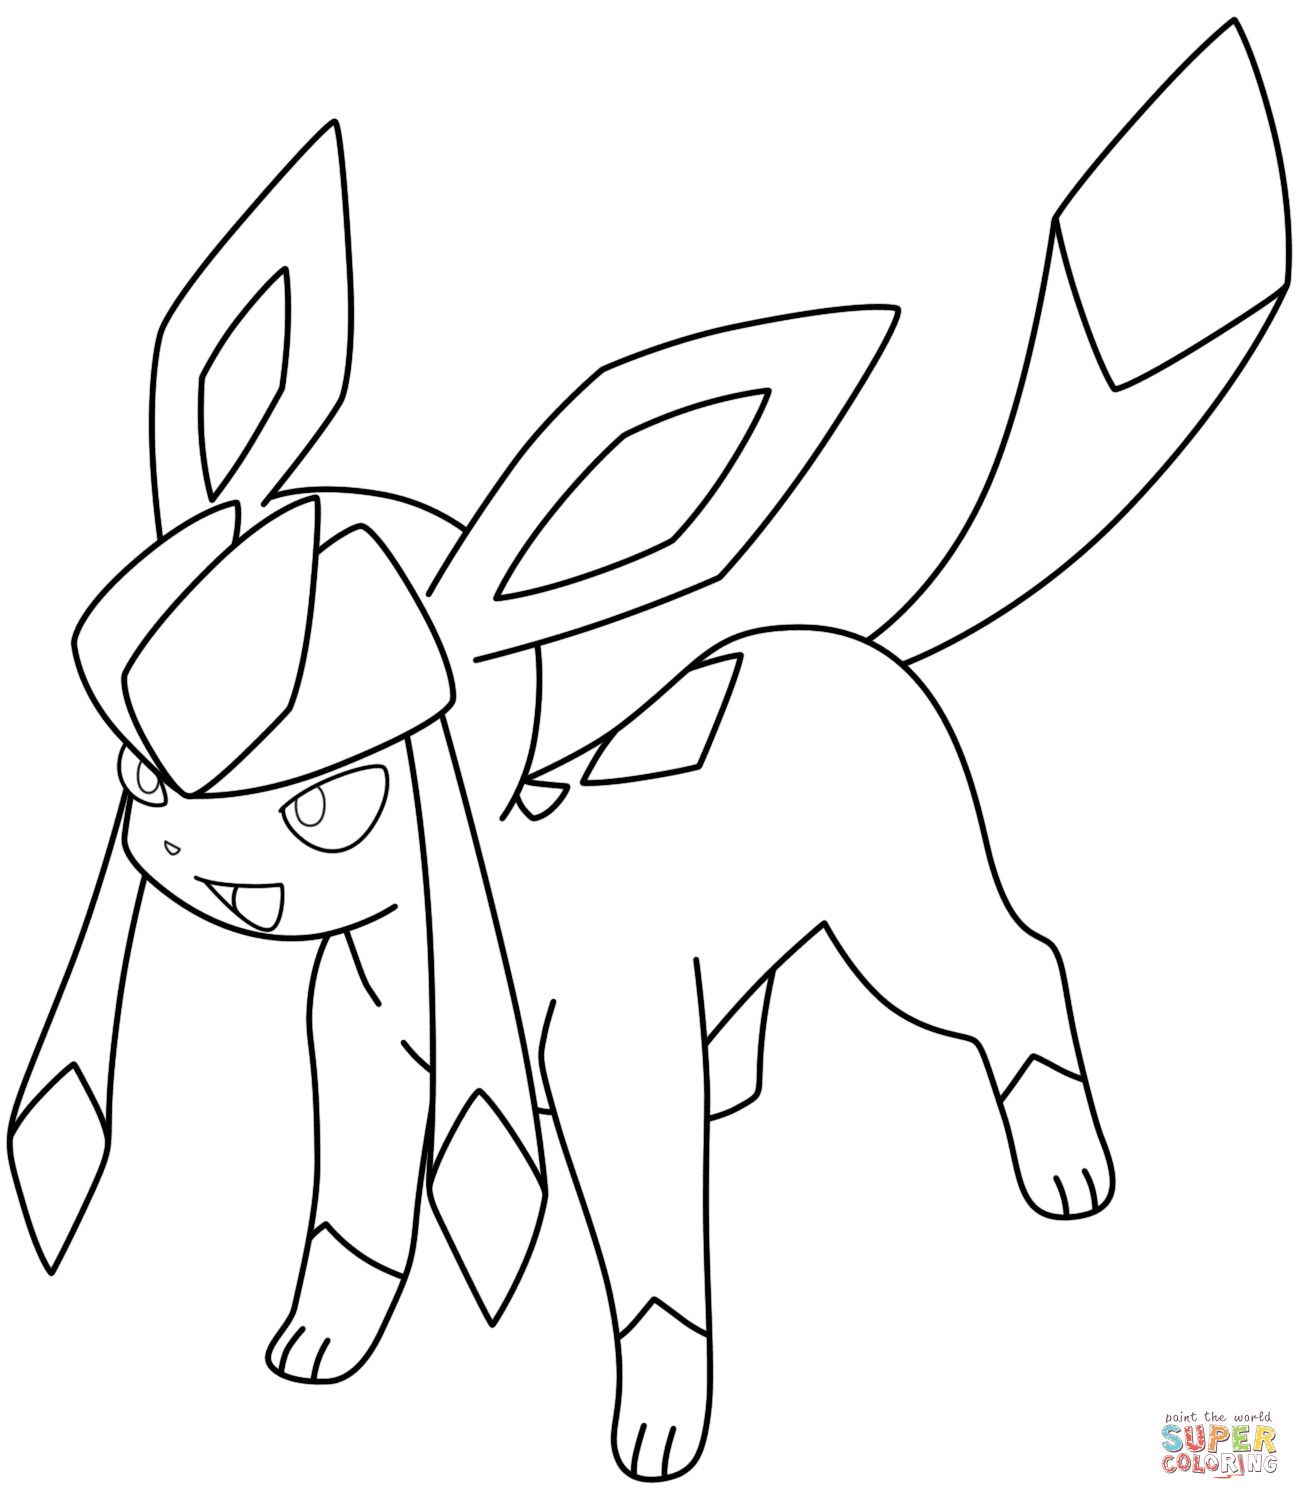 4 Sylveon Coloring Pages Printable Free Download Pokemon Coloring Pokemon Coloring Sheets Pokemon Coloring Pages